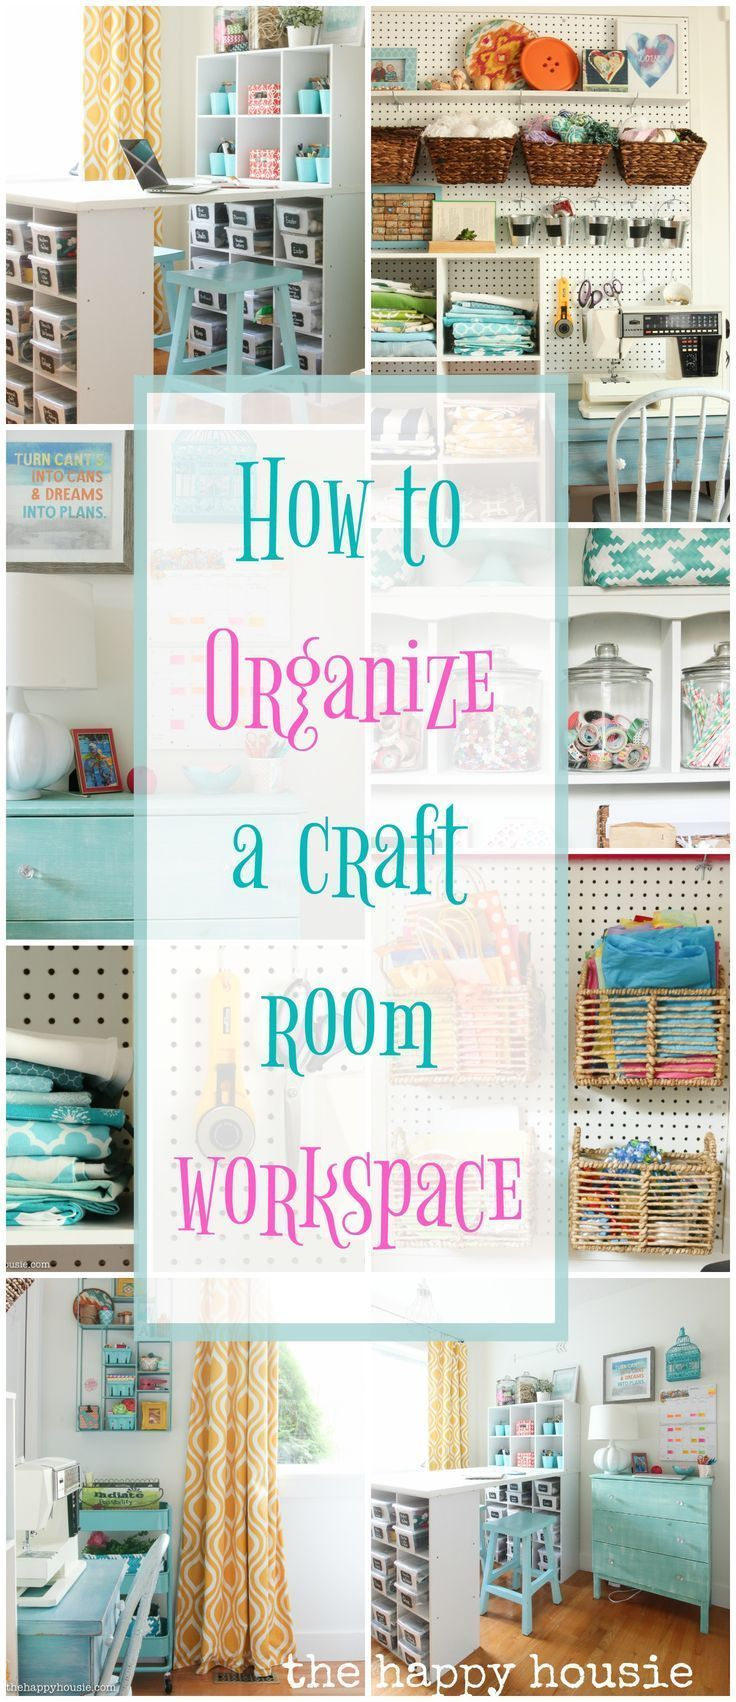 How to Organize a Craft Room Work Space | The Happy Housie,  #Craft #Happy #Housie #Organize #Organizeideas #Room #space #Work